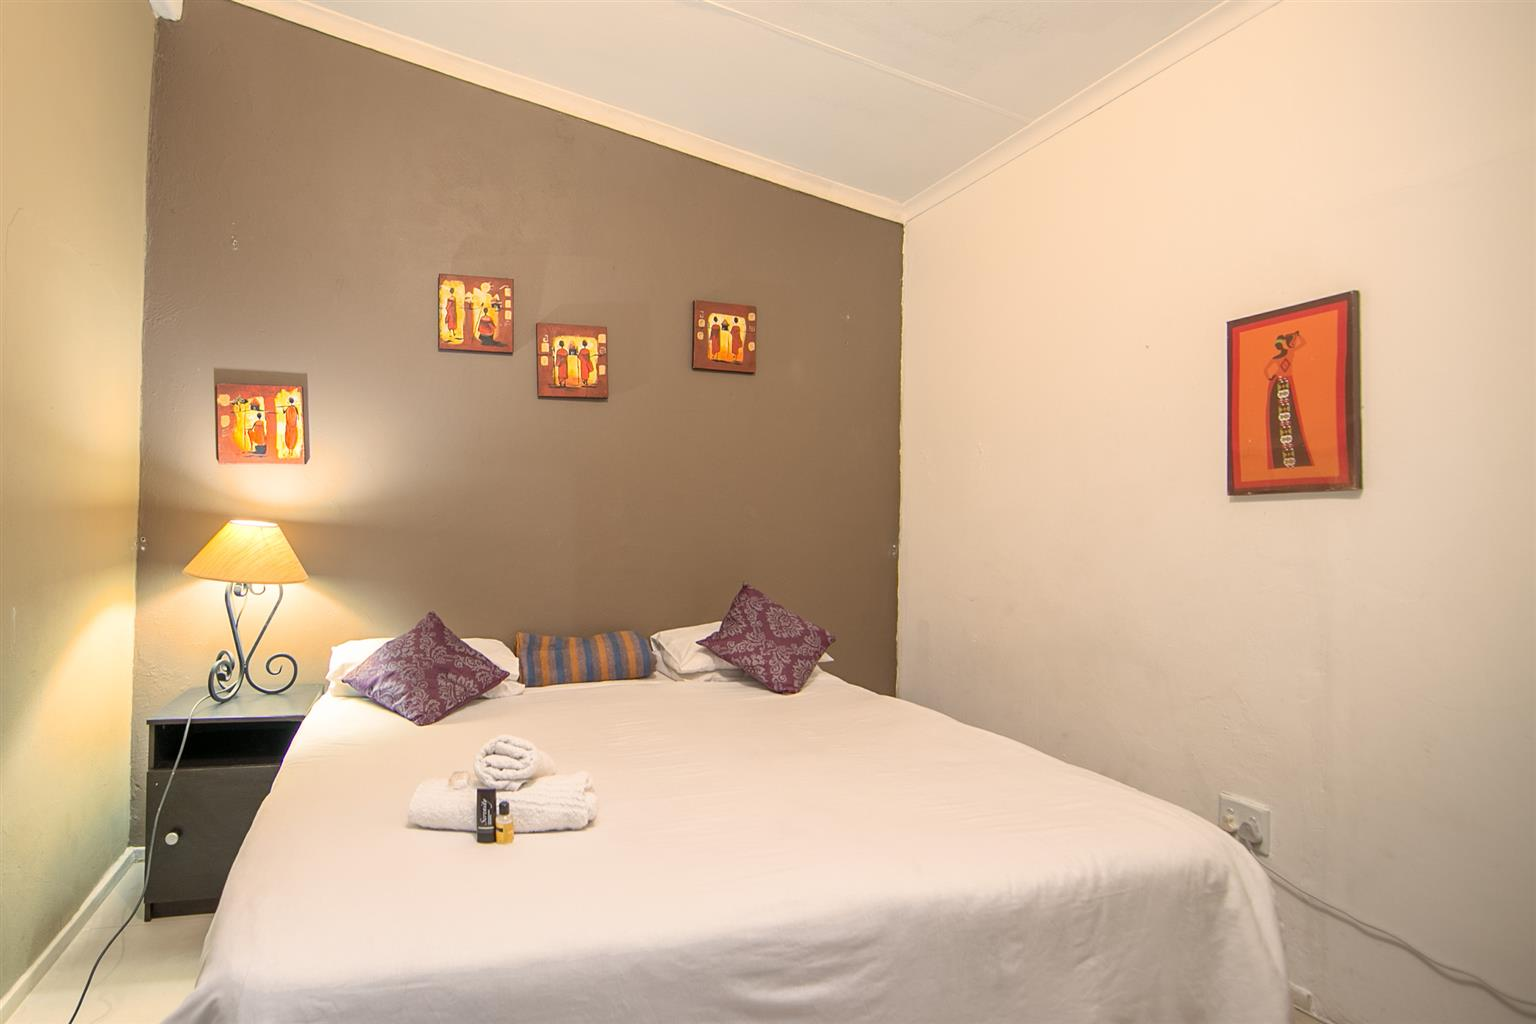 WEEKEND SPECIAL!! R499 PER NIGHT /SLEEPS 2. GREAT DEALS FOR STAYING LONGER!!